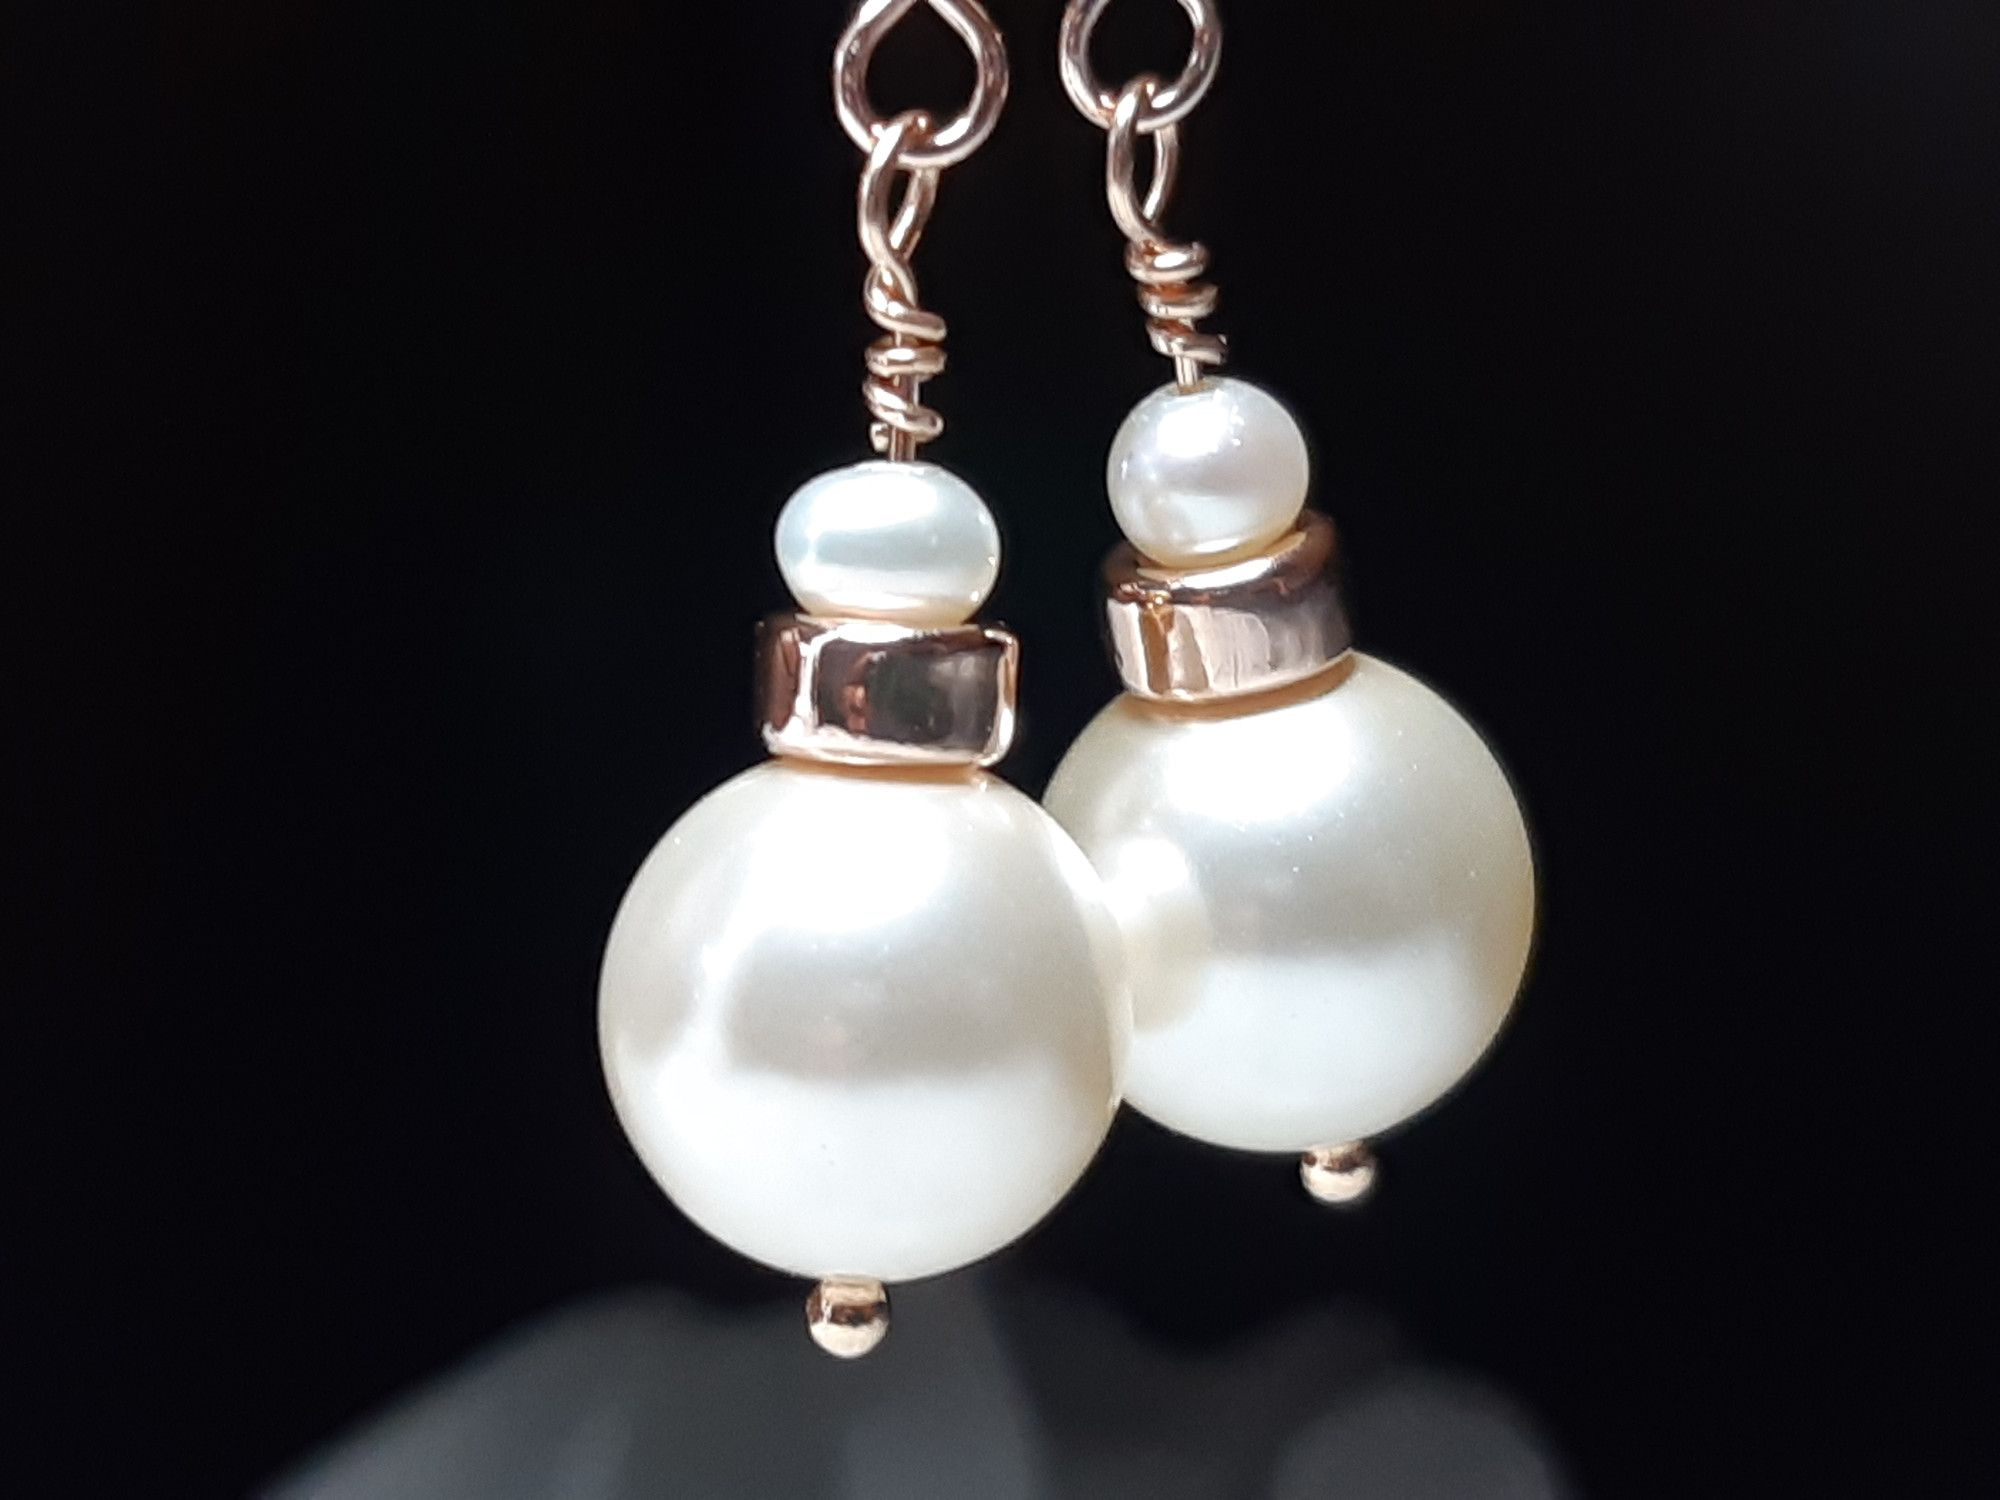 Occasion-bridal-wedding-pearl earrings with rose gold-5.jpg